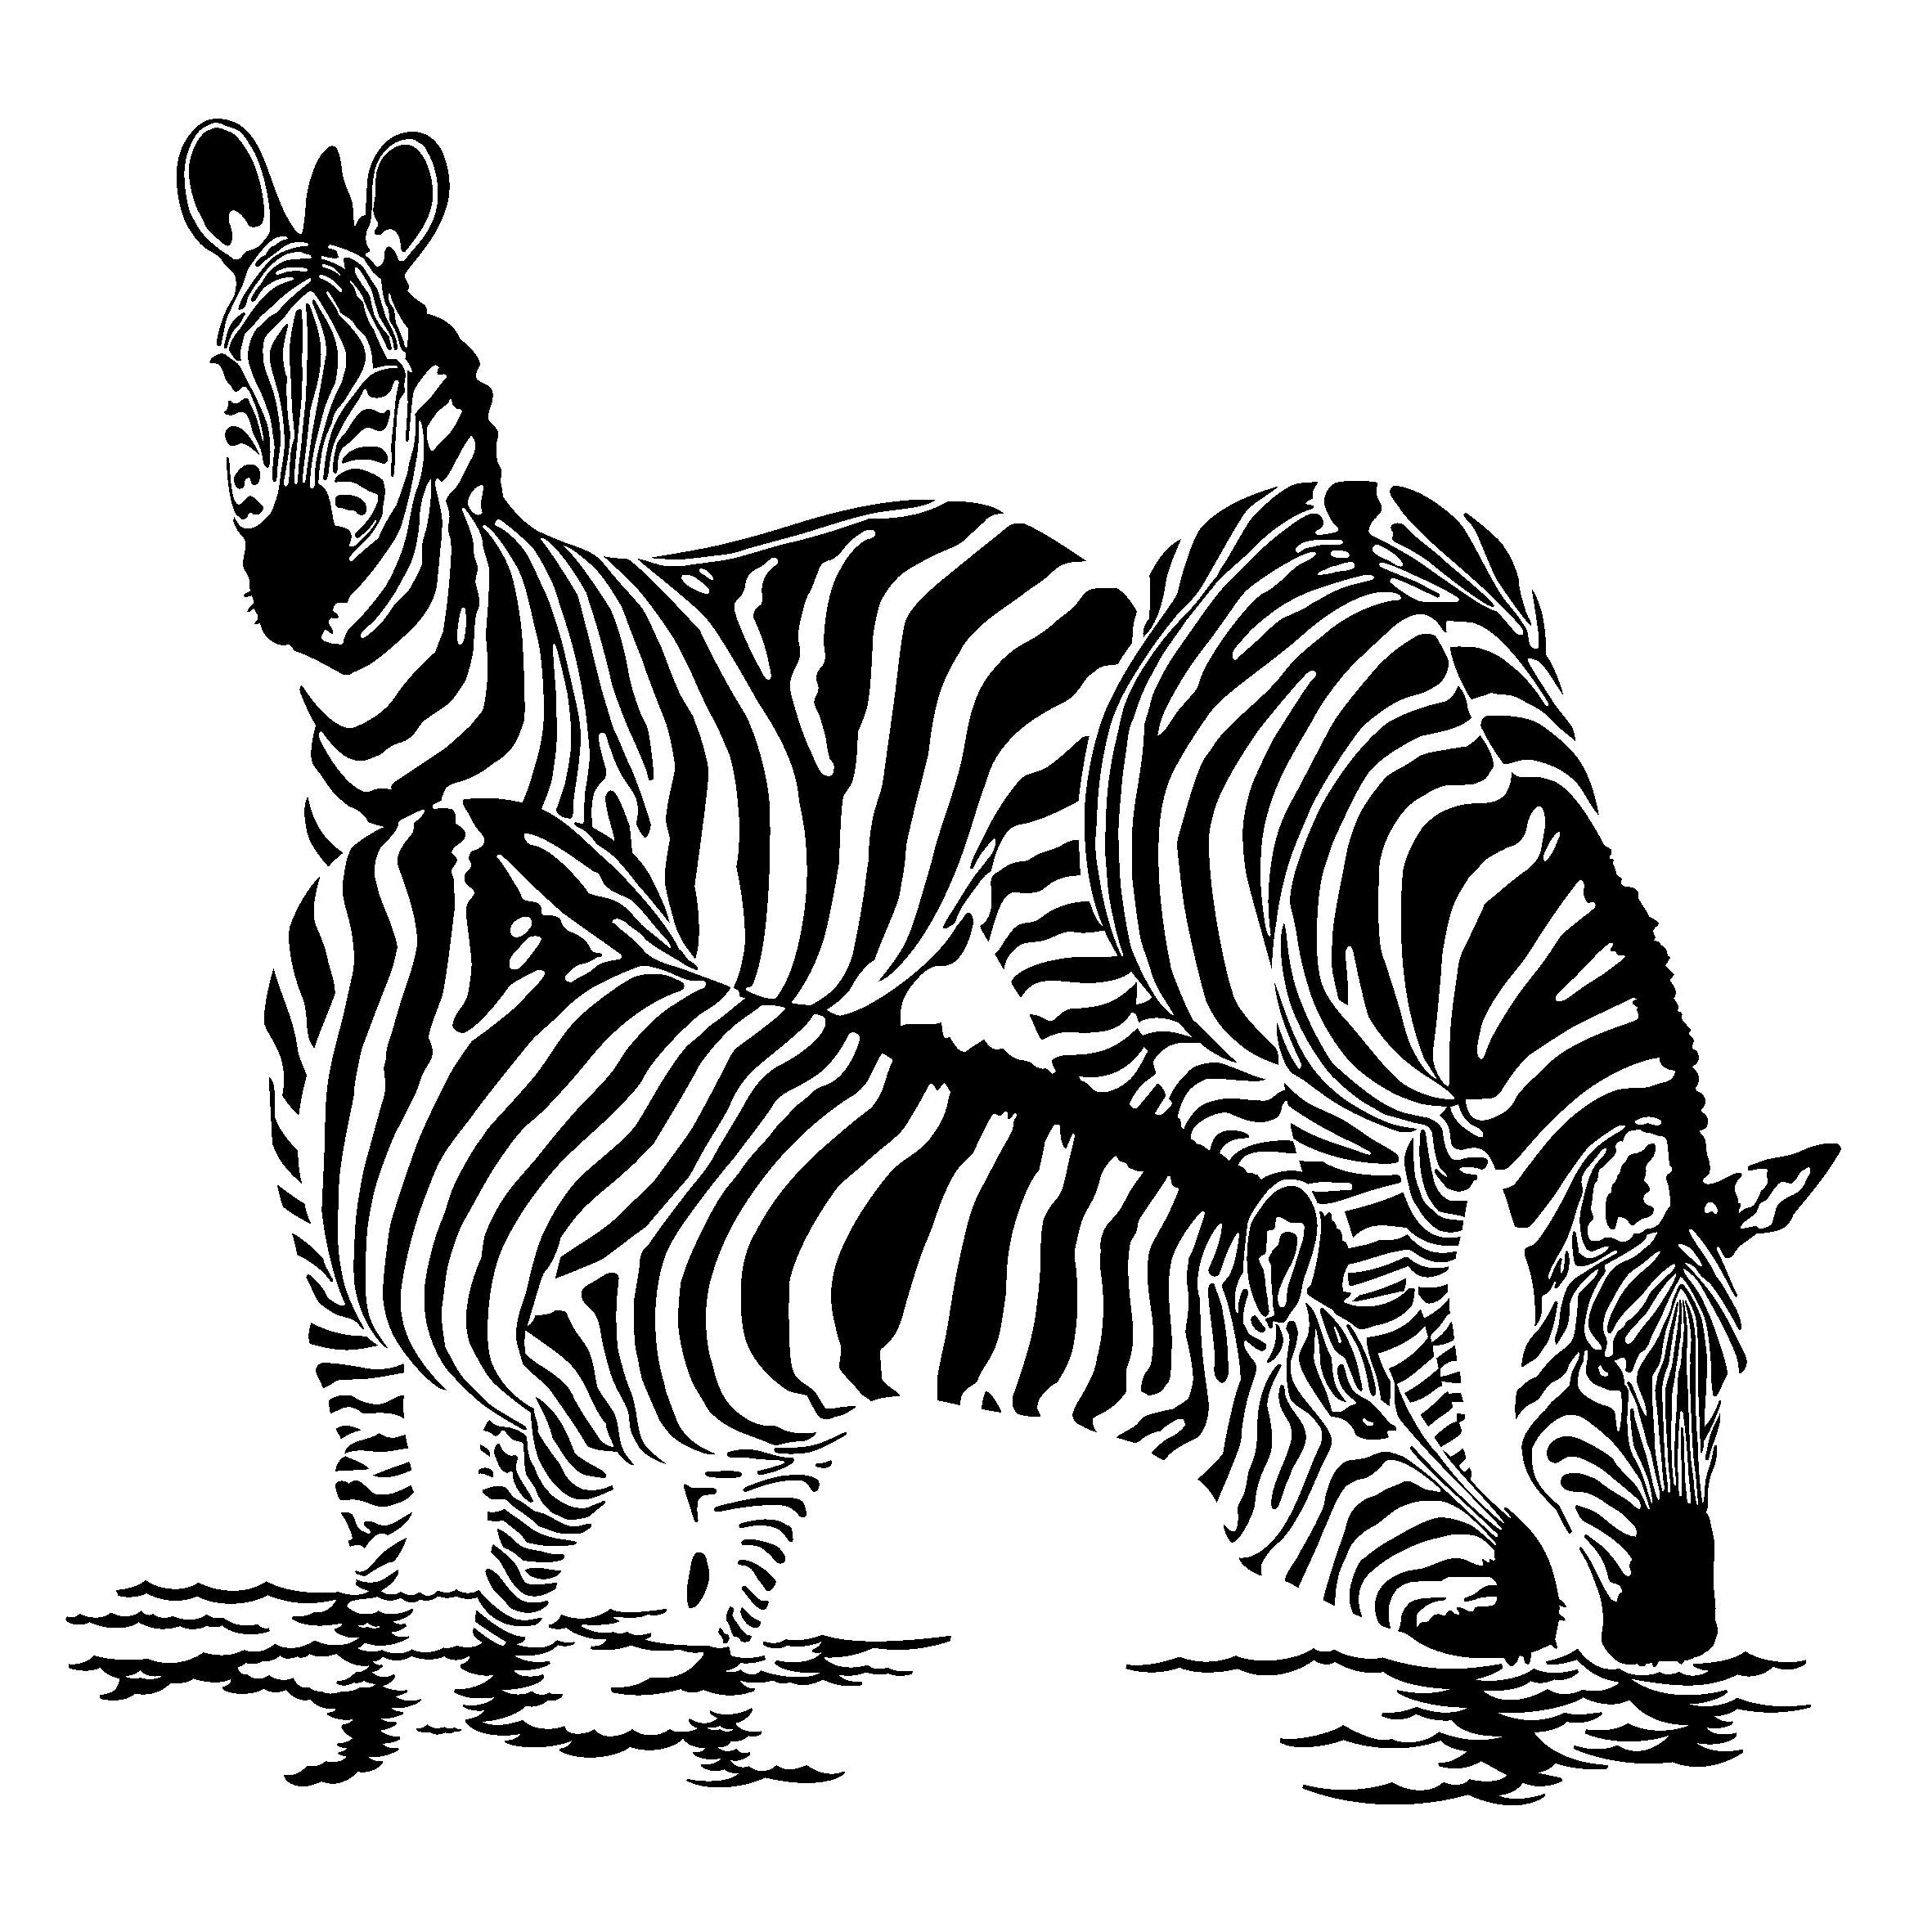 free zebra coloring pages to print free printable zebra coloring pages for kids print zebra to coloring pages free